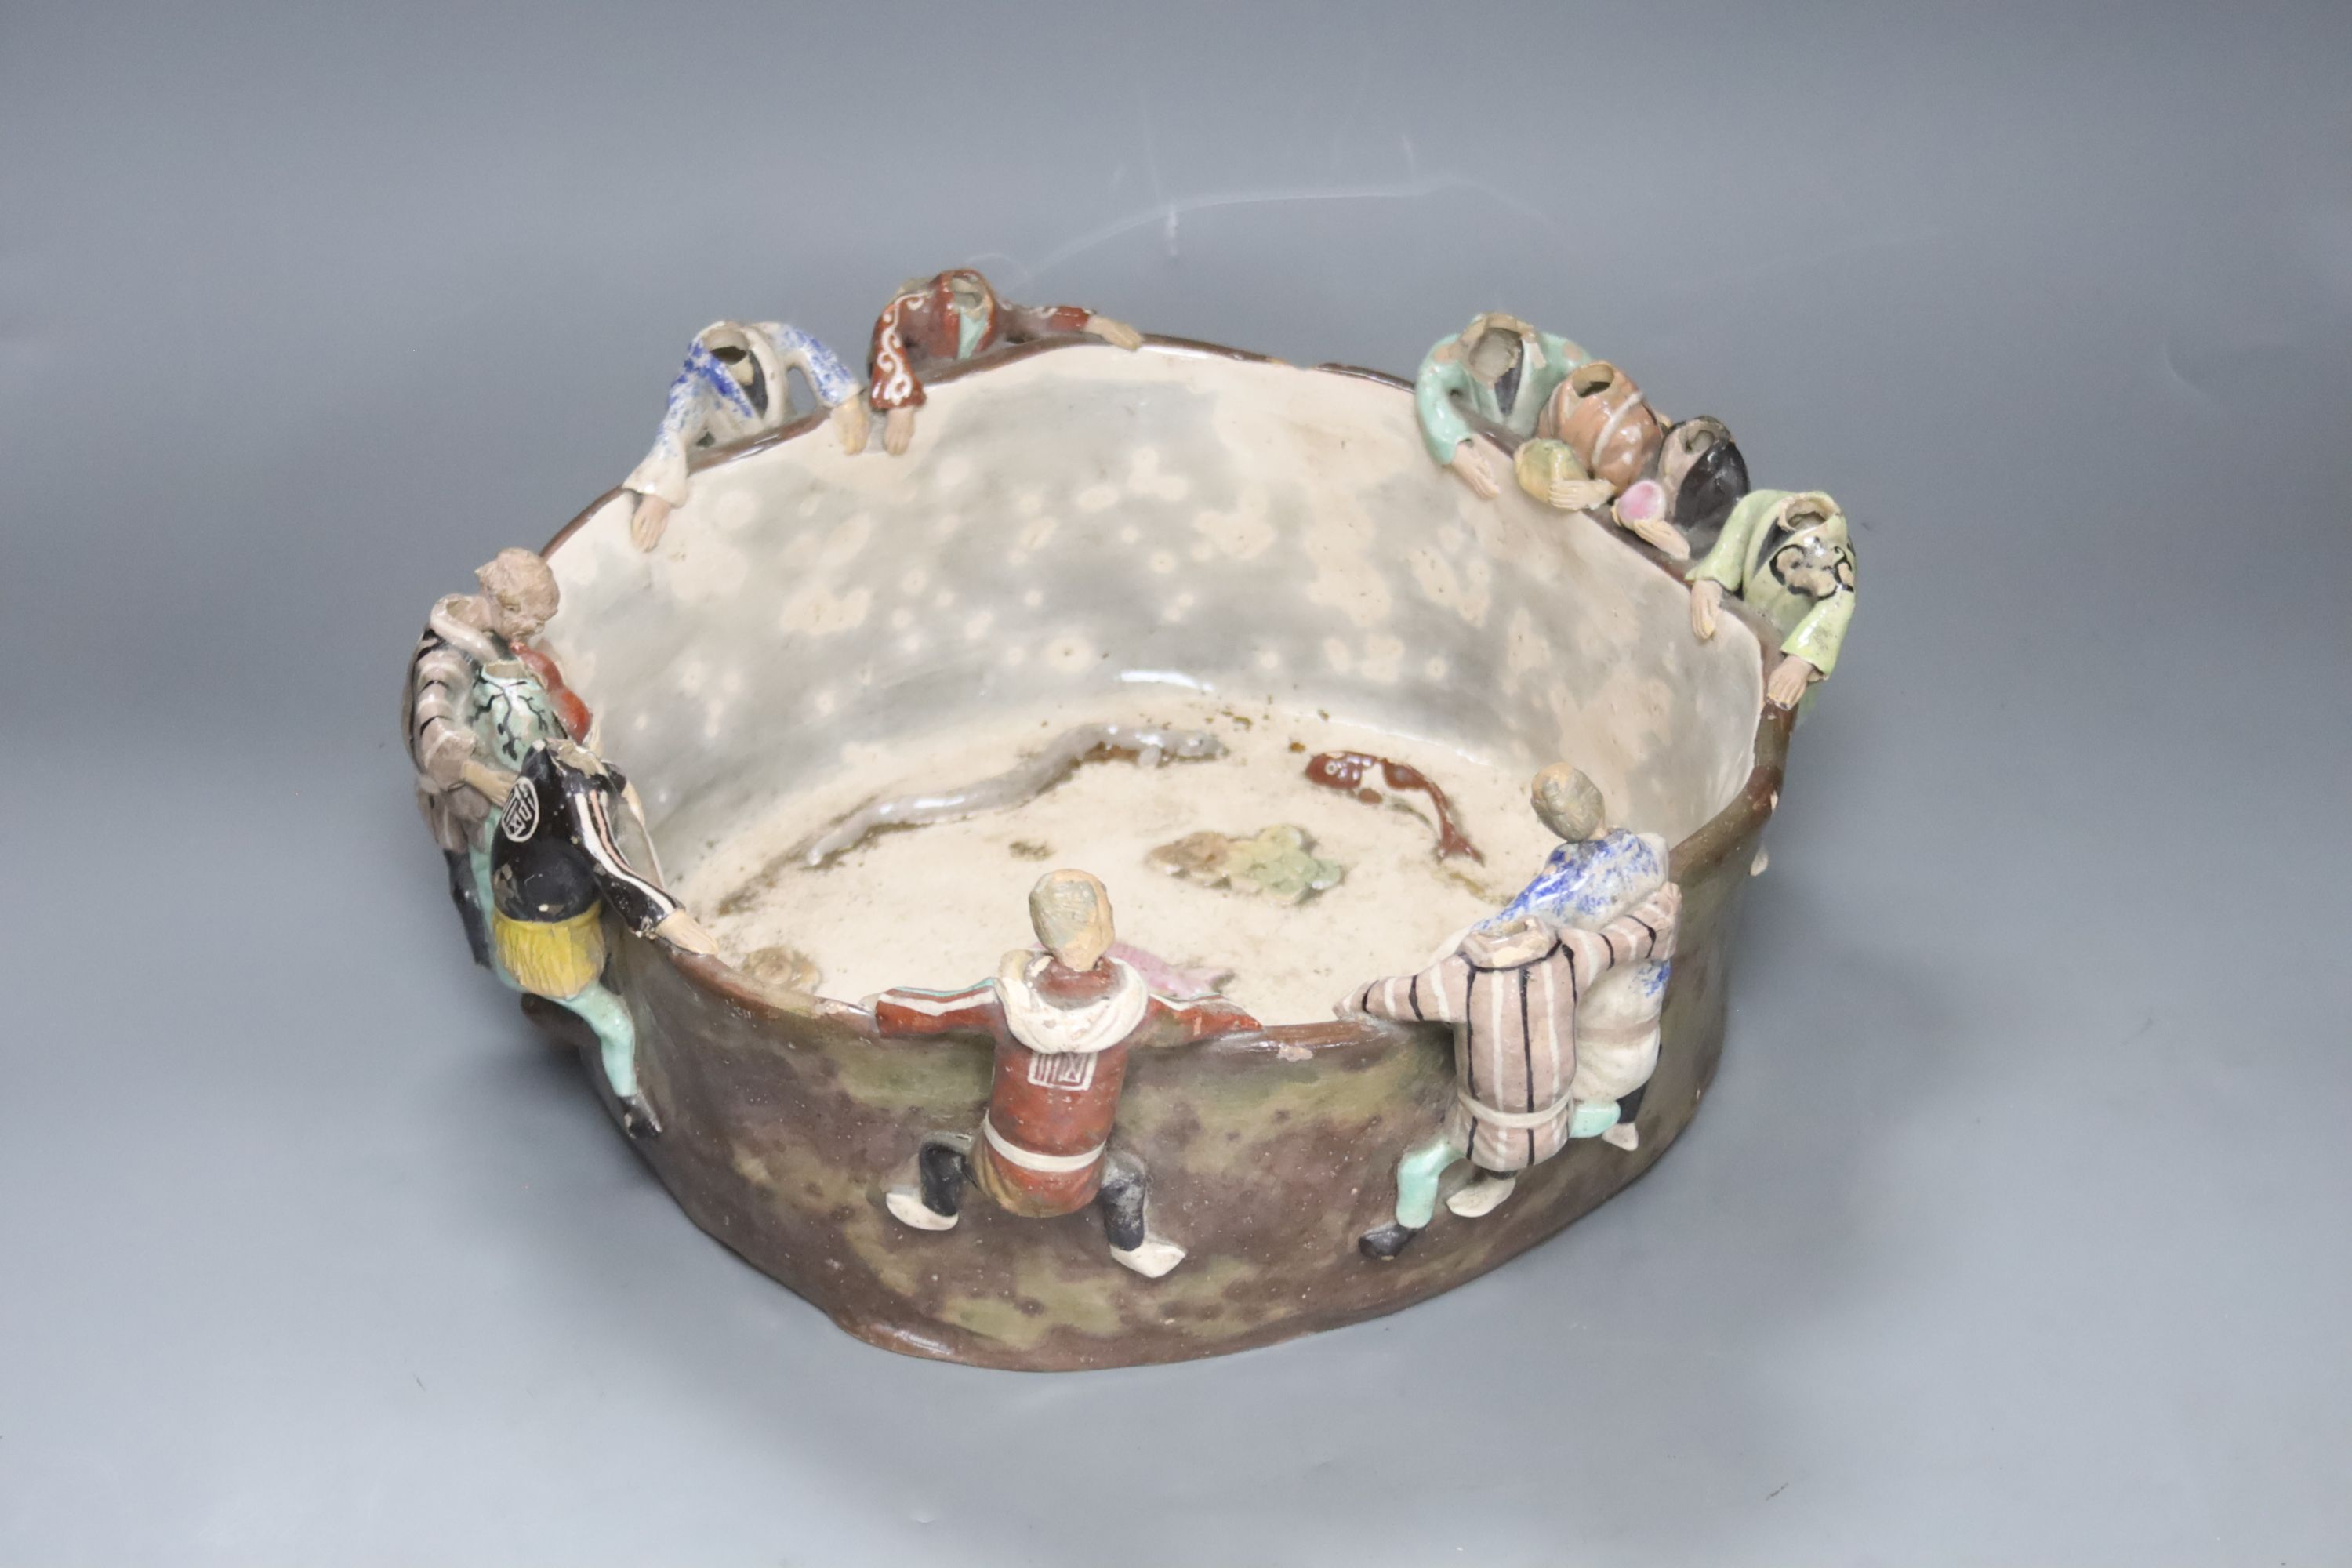 An unusual Japanese Sumida style pottery bowl, figures with detaching heads, diameter 32cm